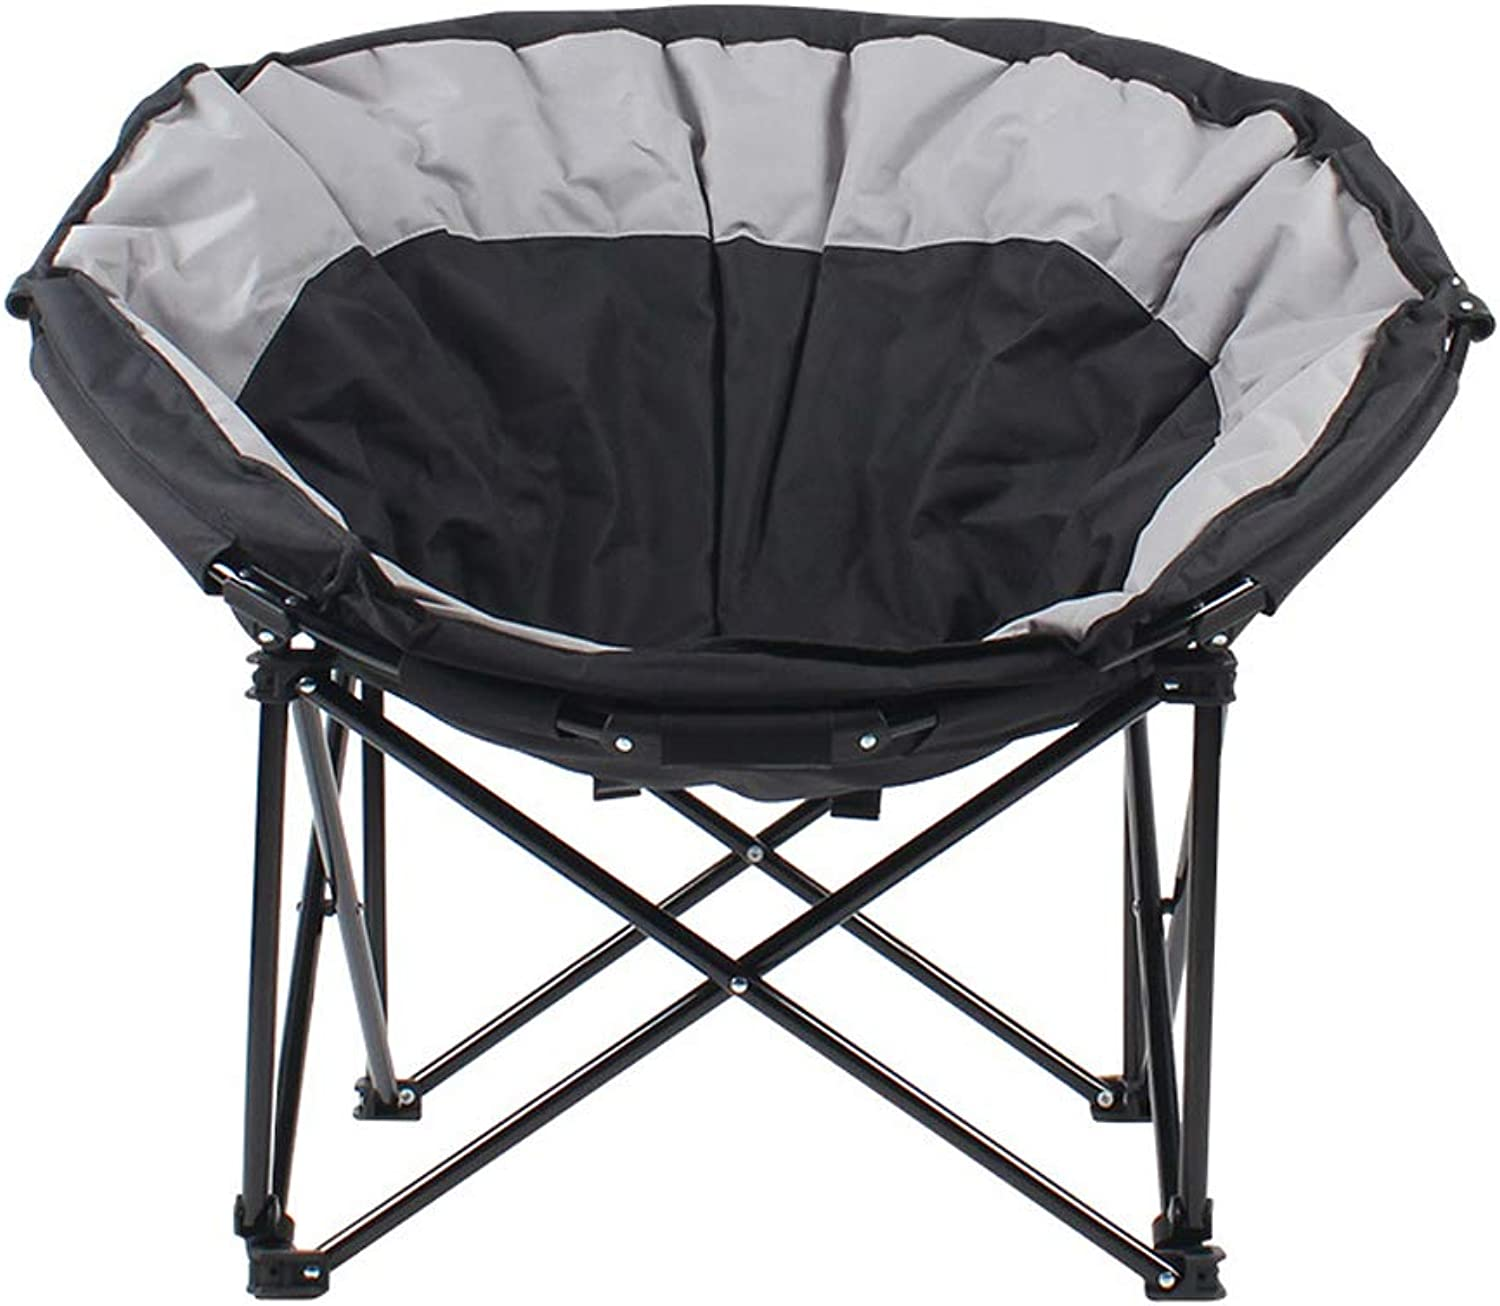 Comfortable Folding Moon Chair  Chair for Pregnant Women Lunch Break Chair Outdoor Lounge Chair Suitable for Any Living Room, Garden or Apartment Space